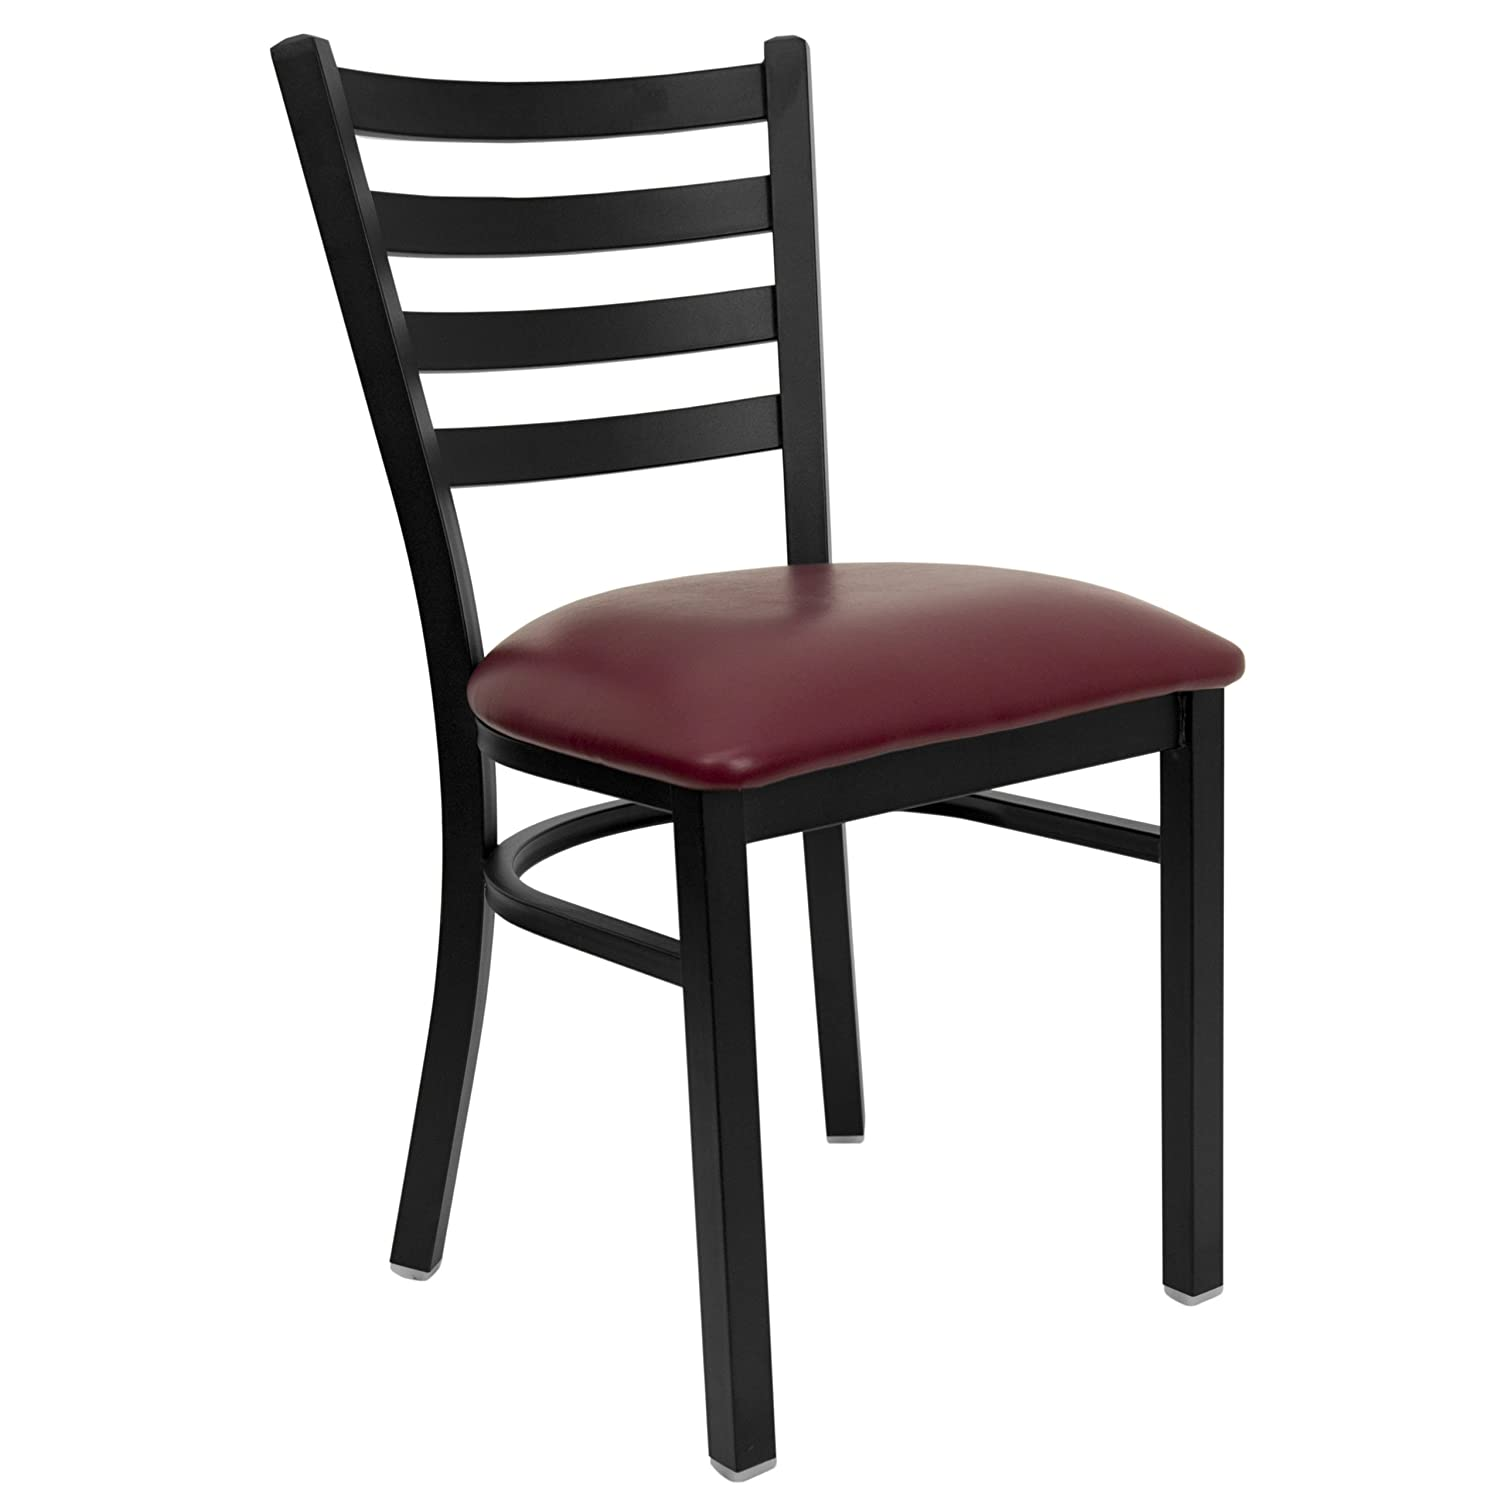 Flash Furniture XU-DG694BLAD-BURV-GG HERCULES Series Black Ladder Back Metal Restaurant Chair - Burgundy Vinyl Seat